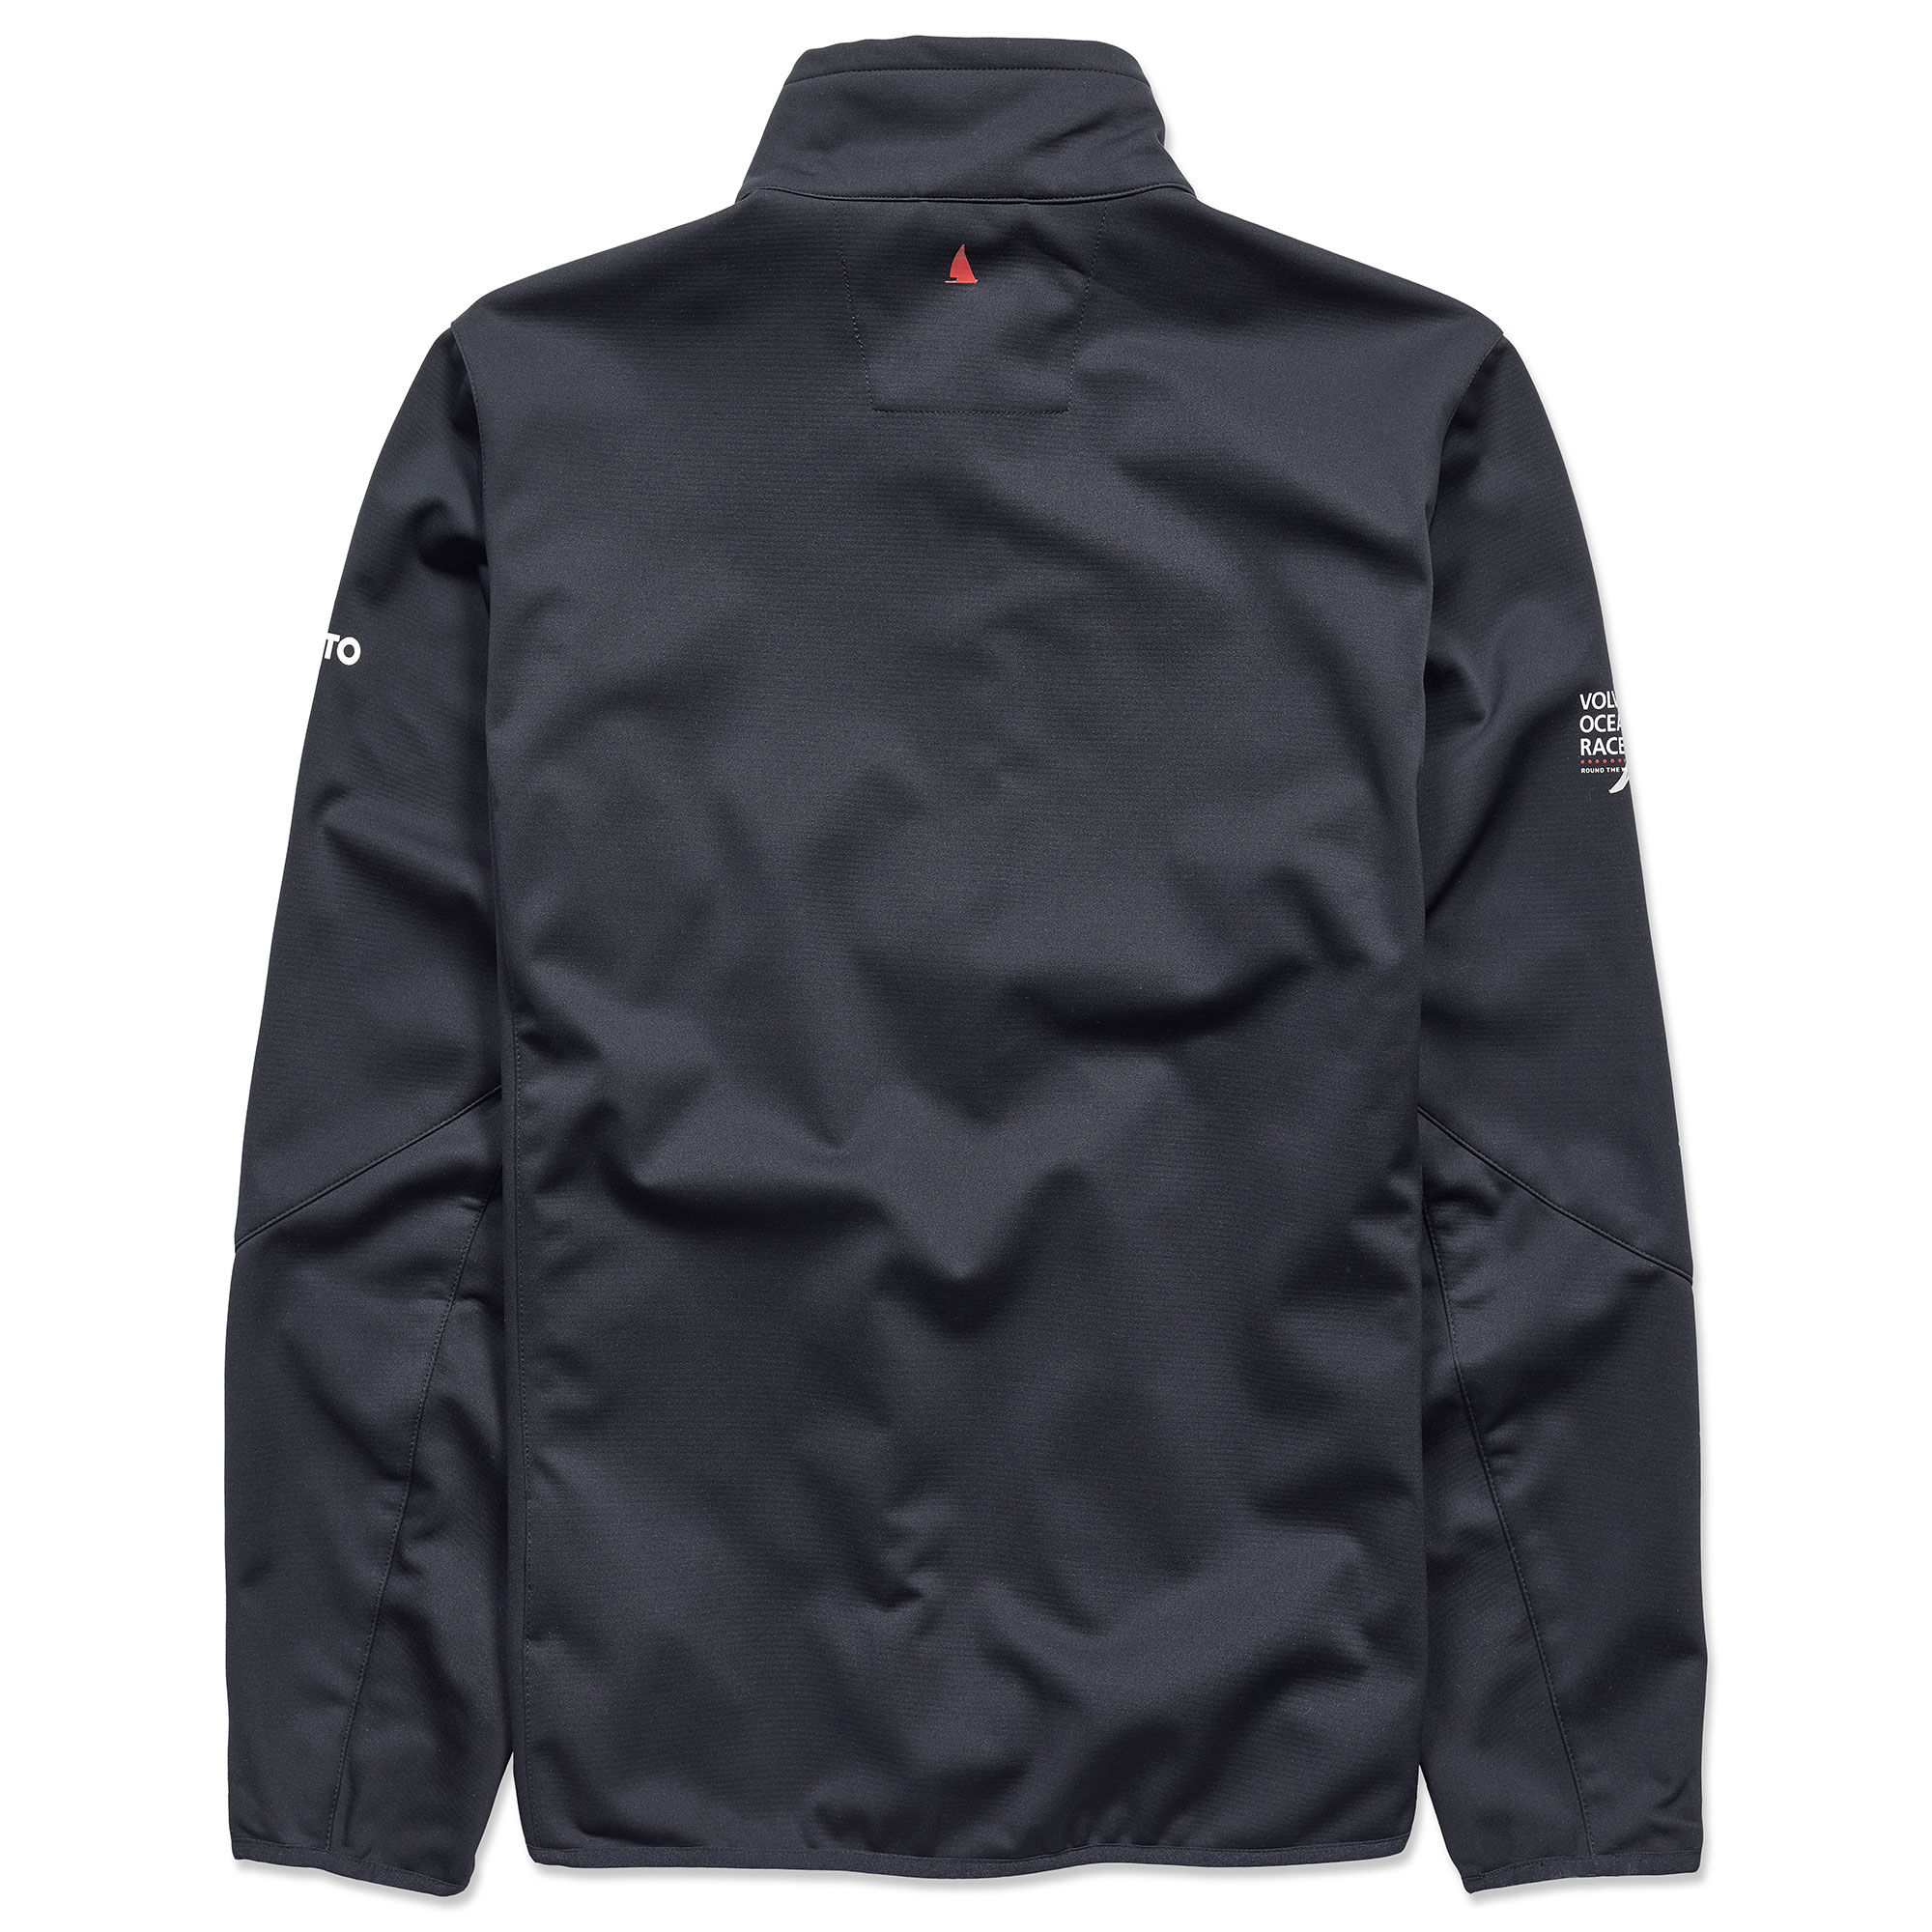 Mens jacket auckland